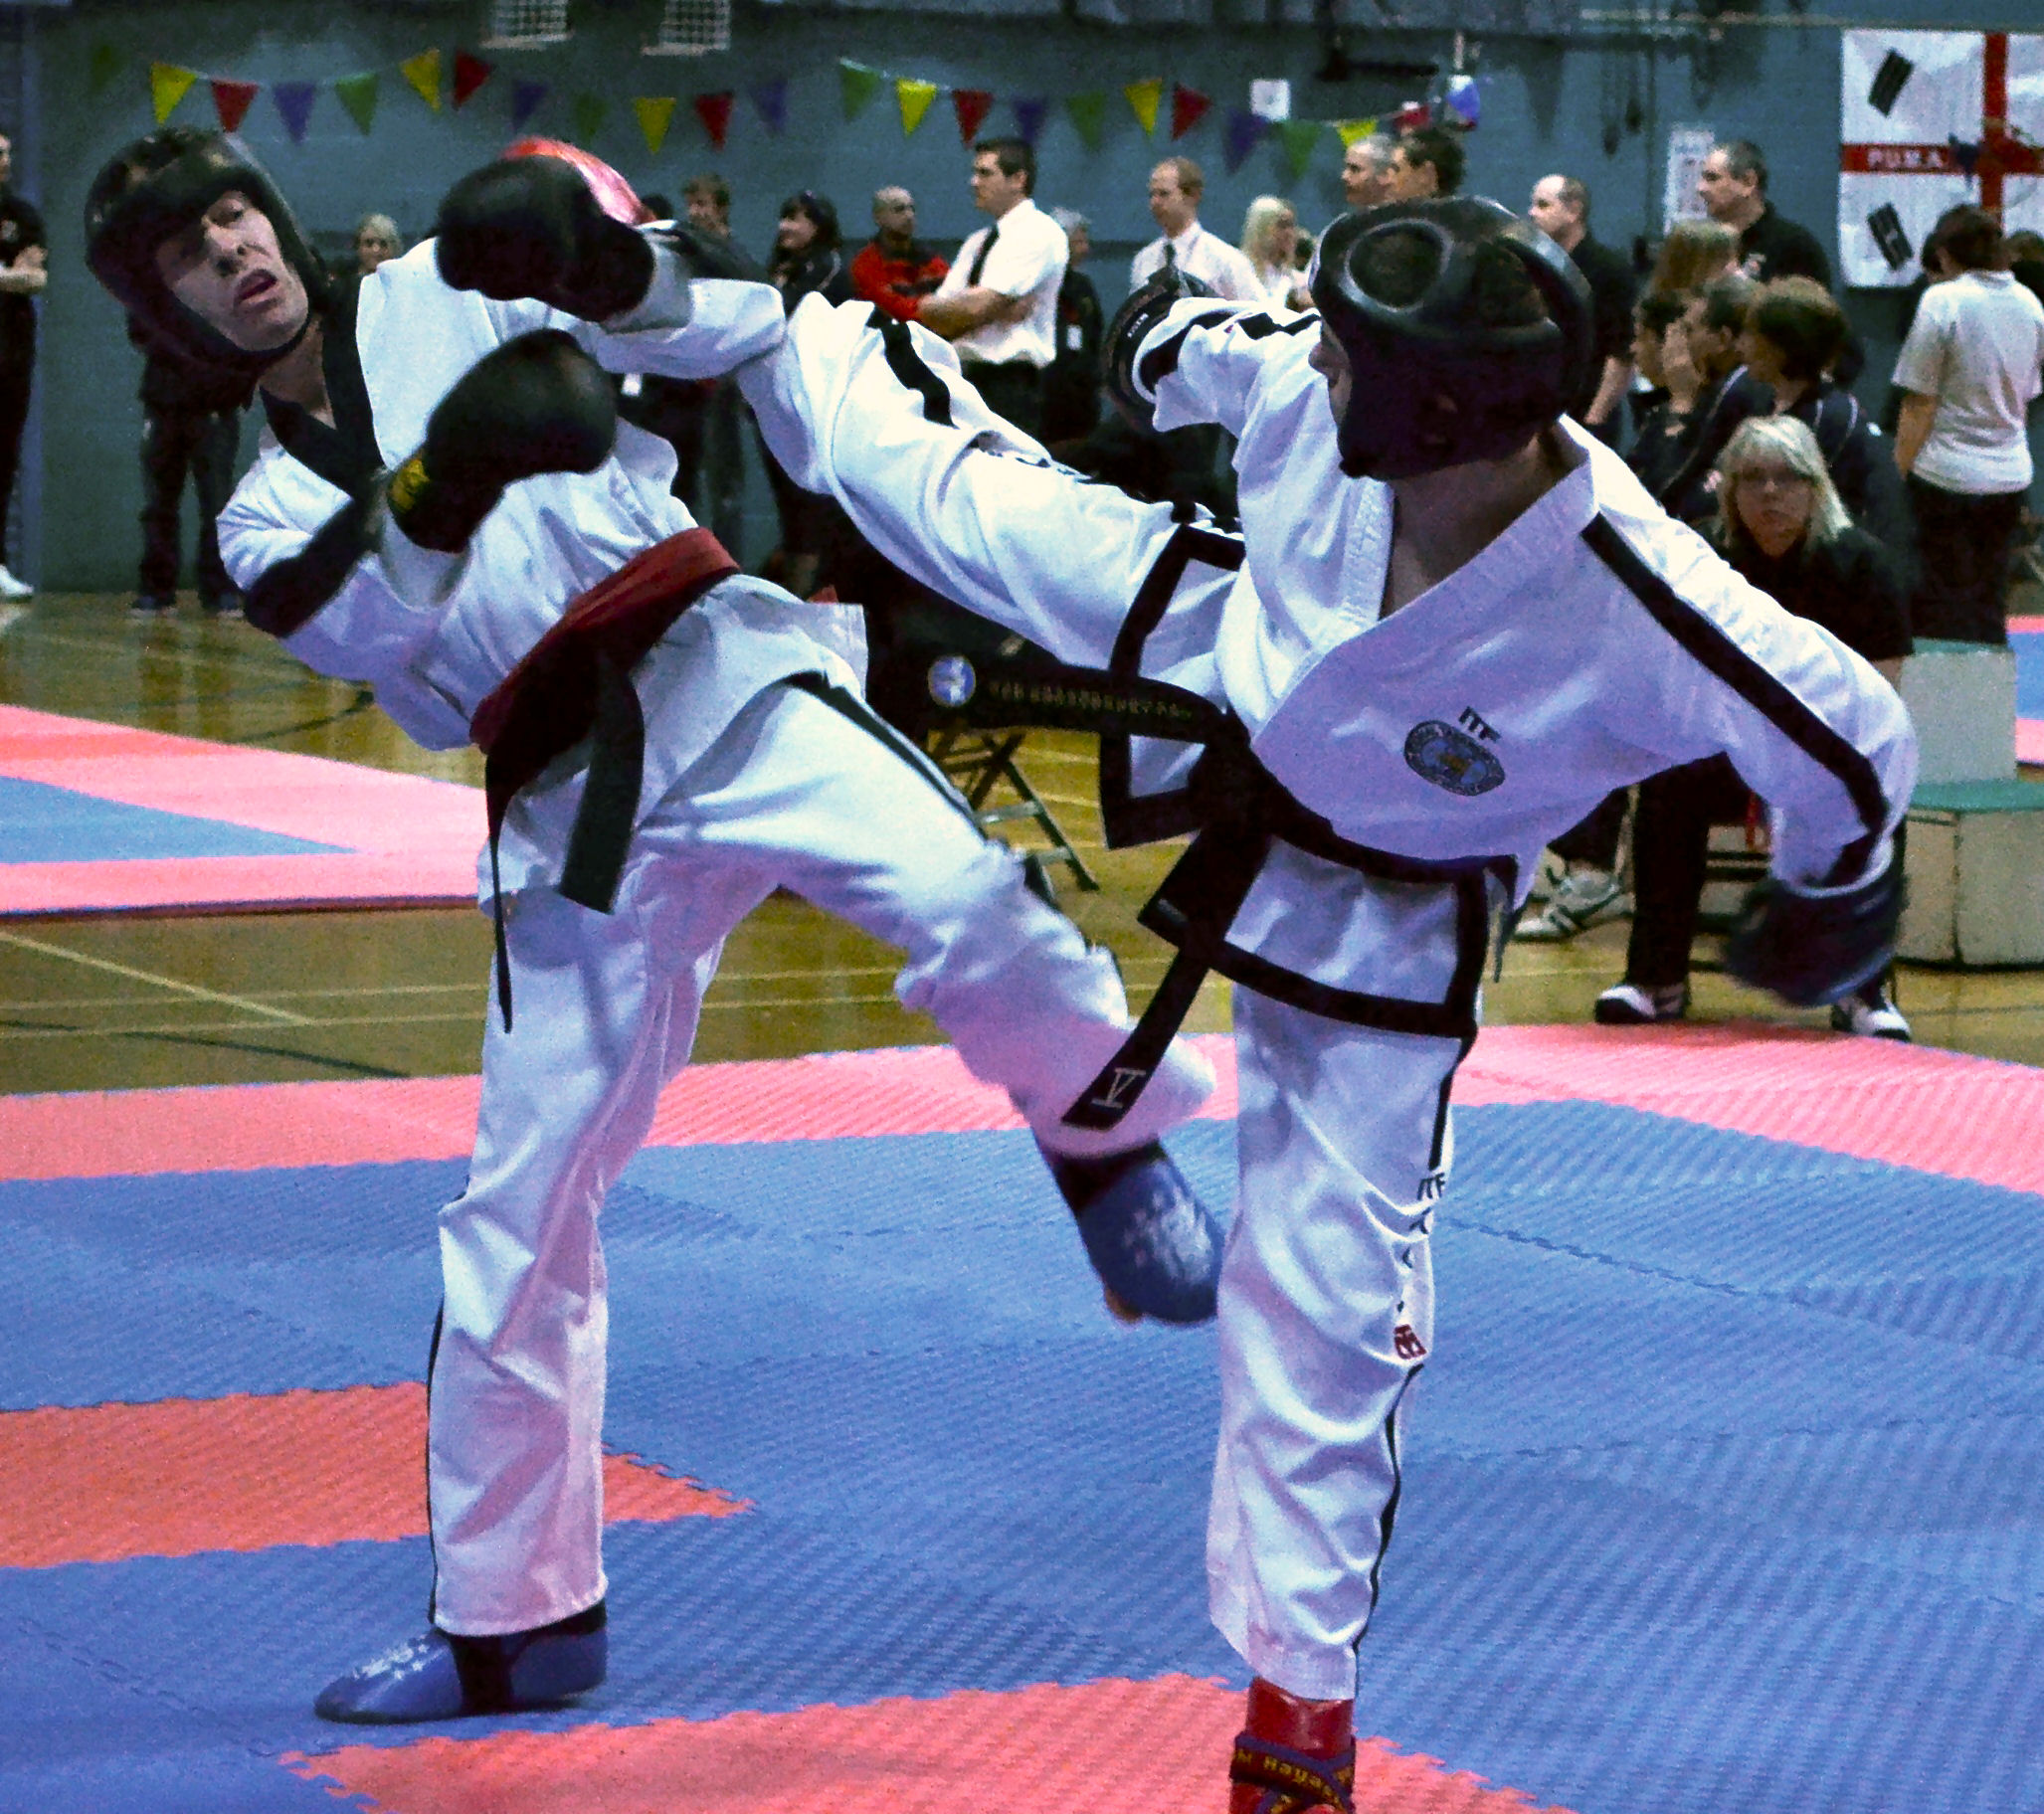 Sparring at PUMA Worlds, 2011